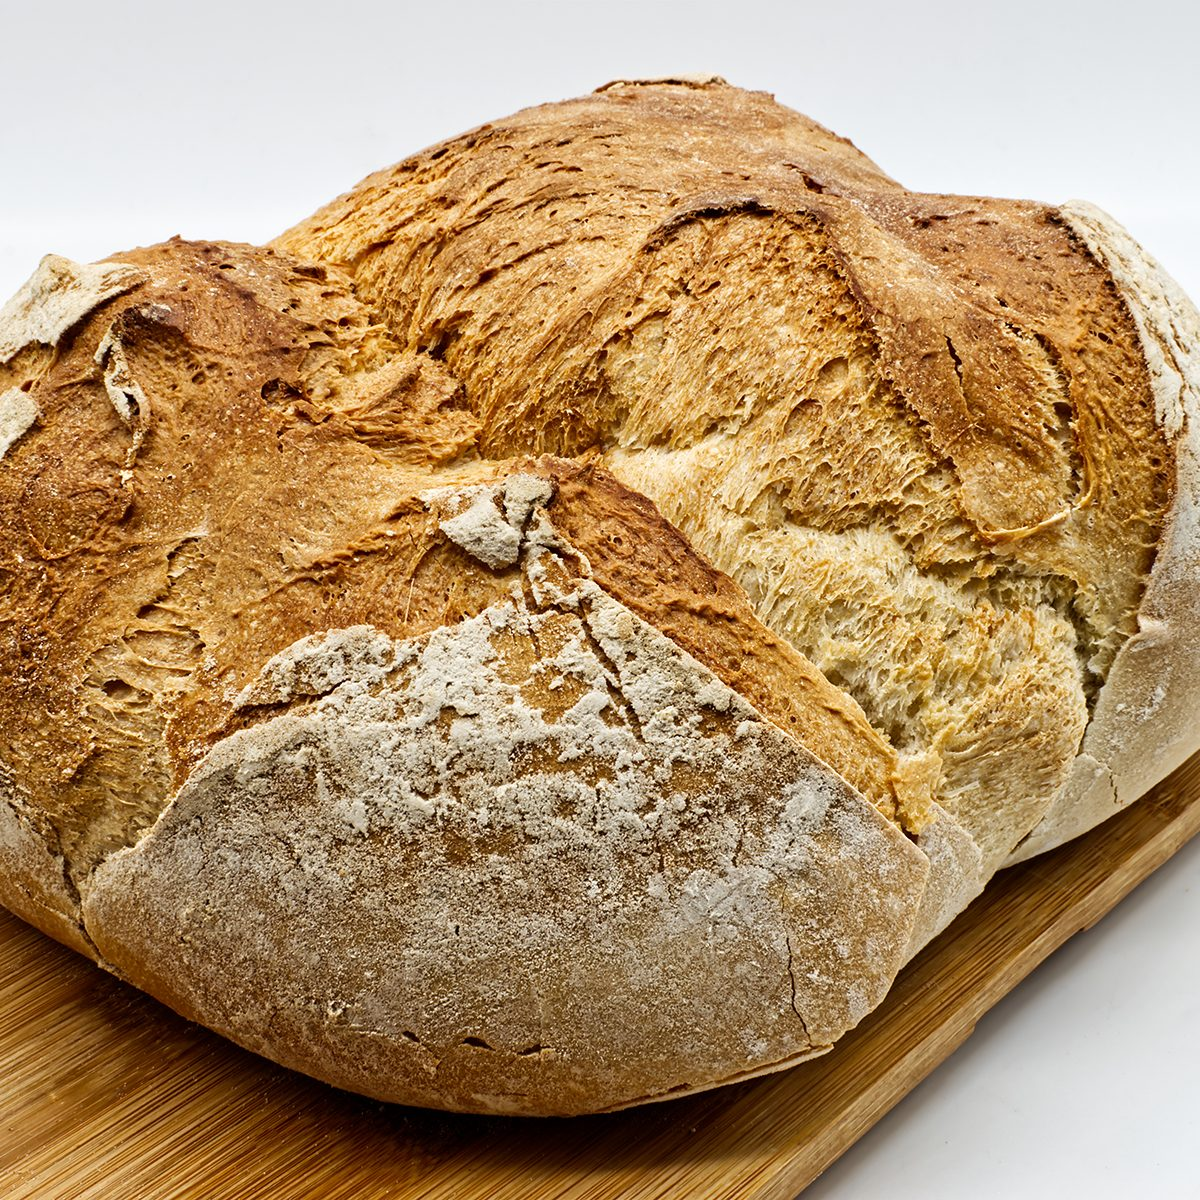 Loaf of Apulian Bread. Italian Pane Pugliese, crunchy on the outside and soft on the inside, perfect to be enjoyed with cold cuts and cheeses.